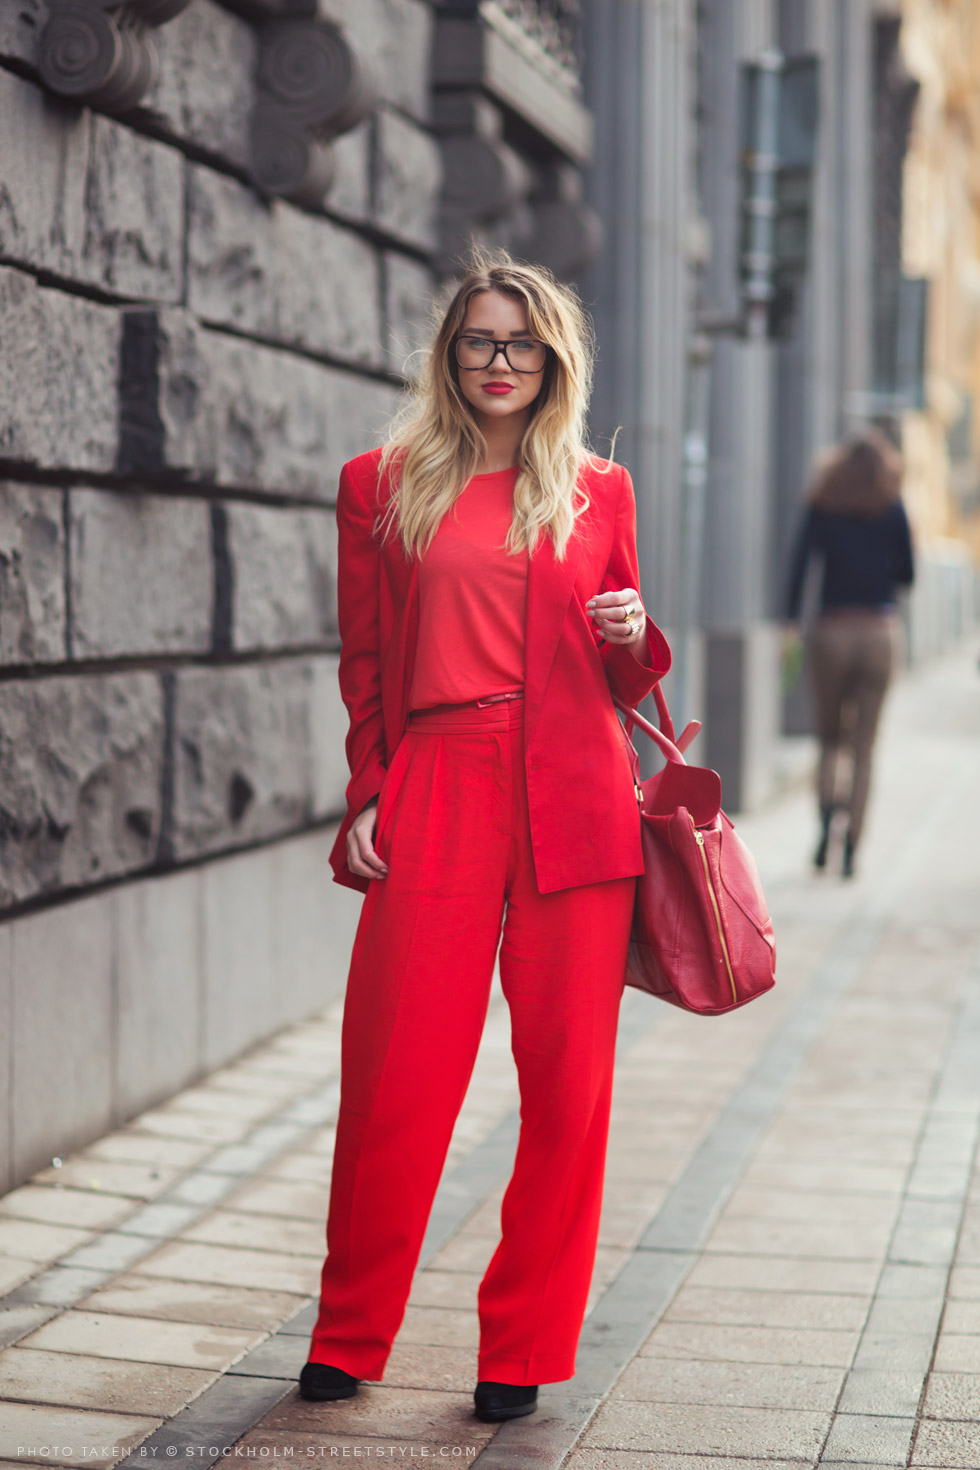 red suit red lipstick street style